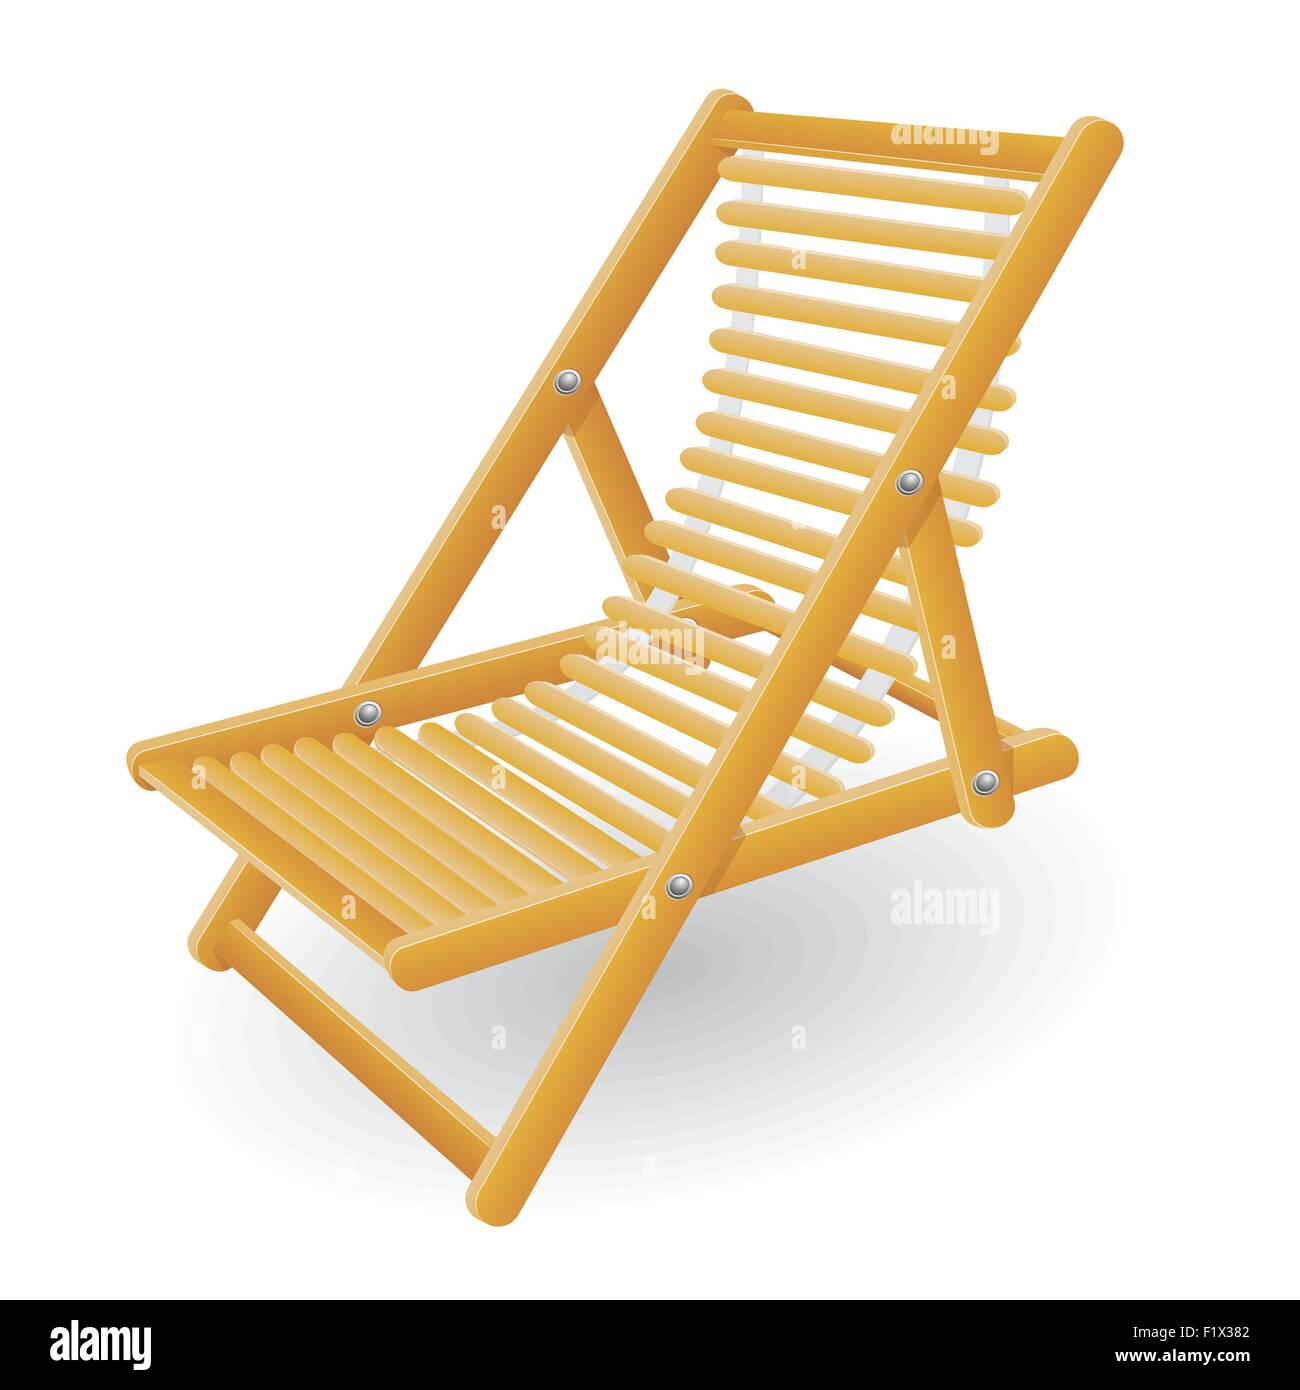 Beach Chair Vector Illustration Isolated On White Background